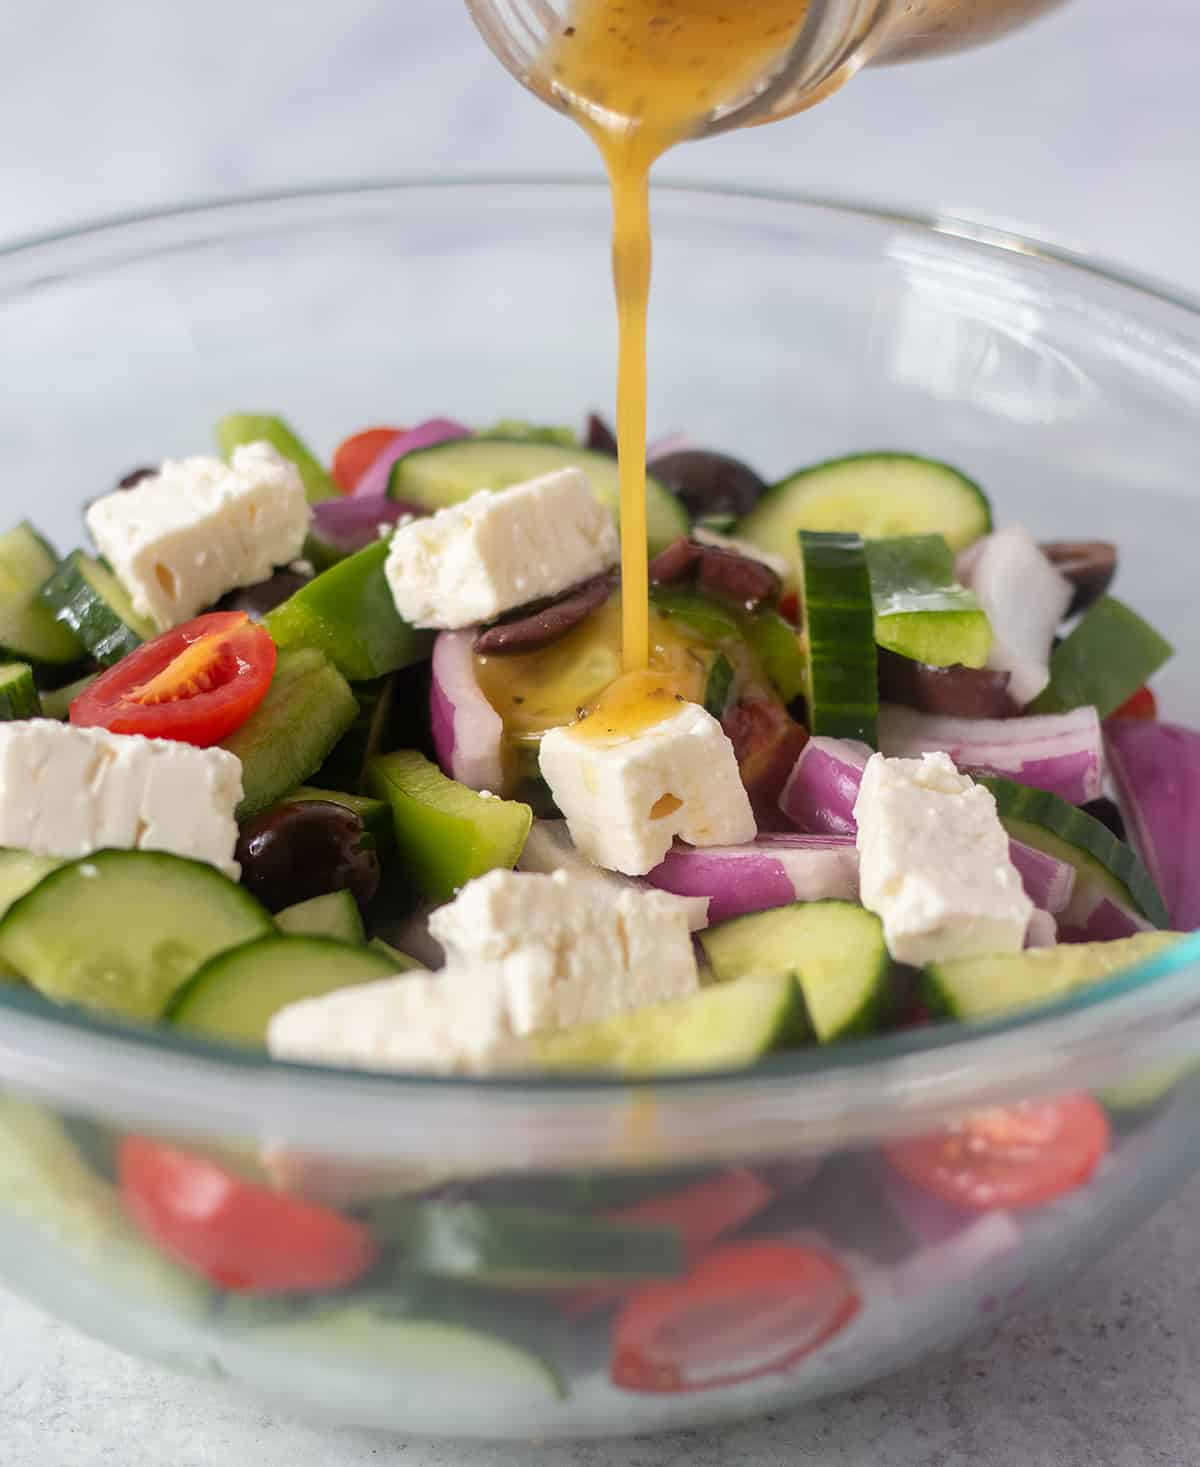 Salad dressing being drizzled on to greek salad